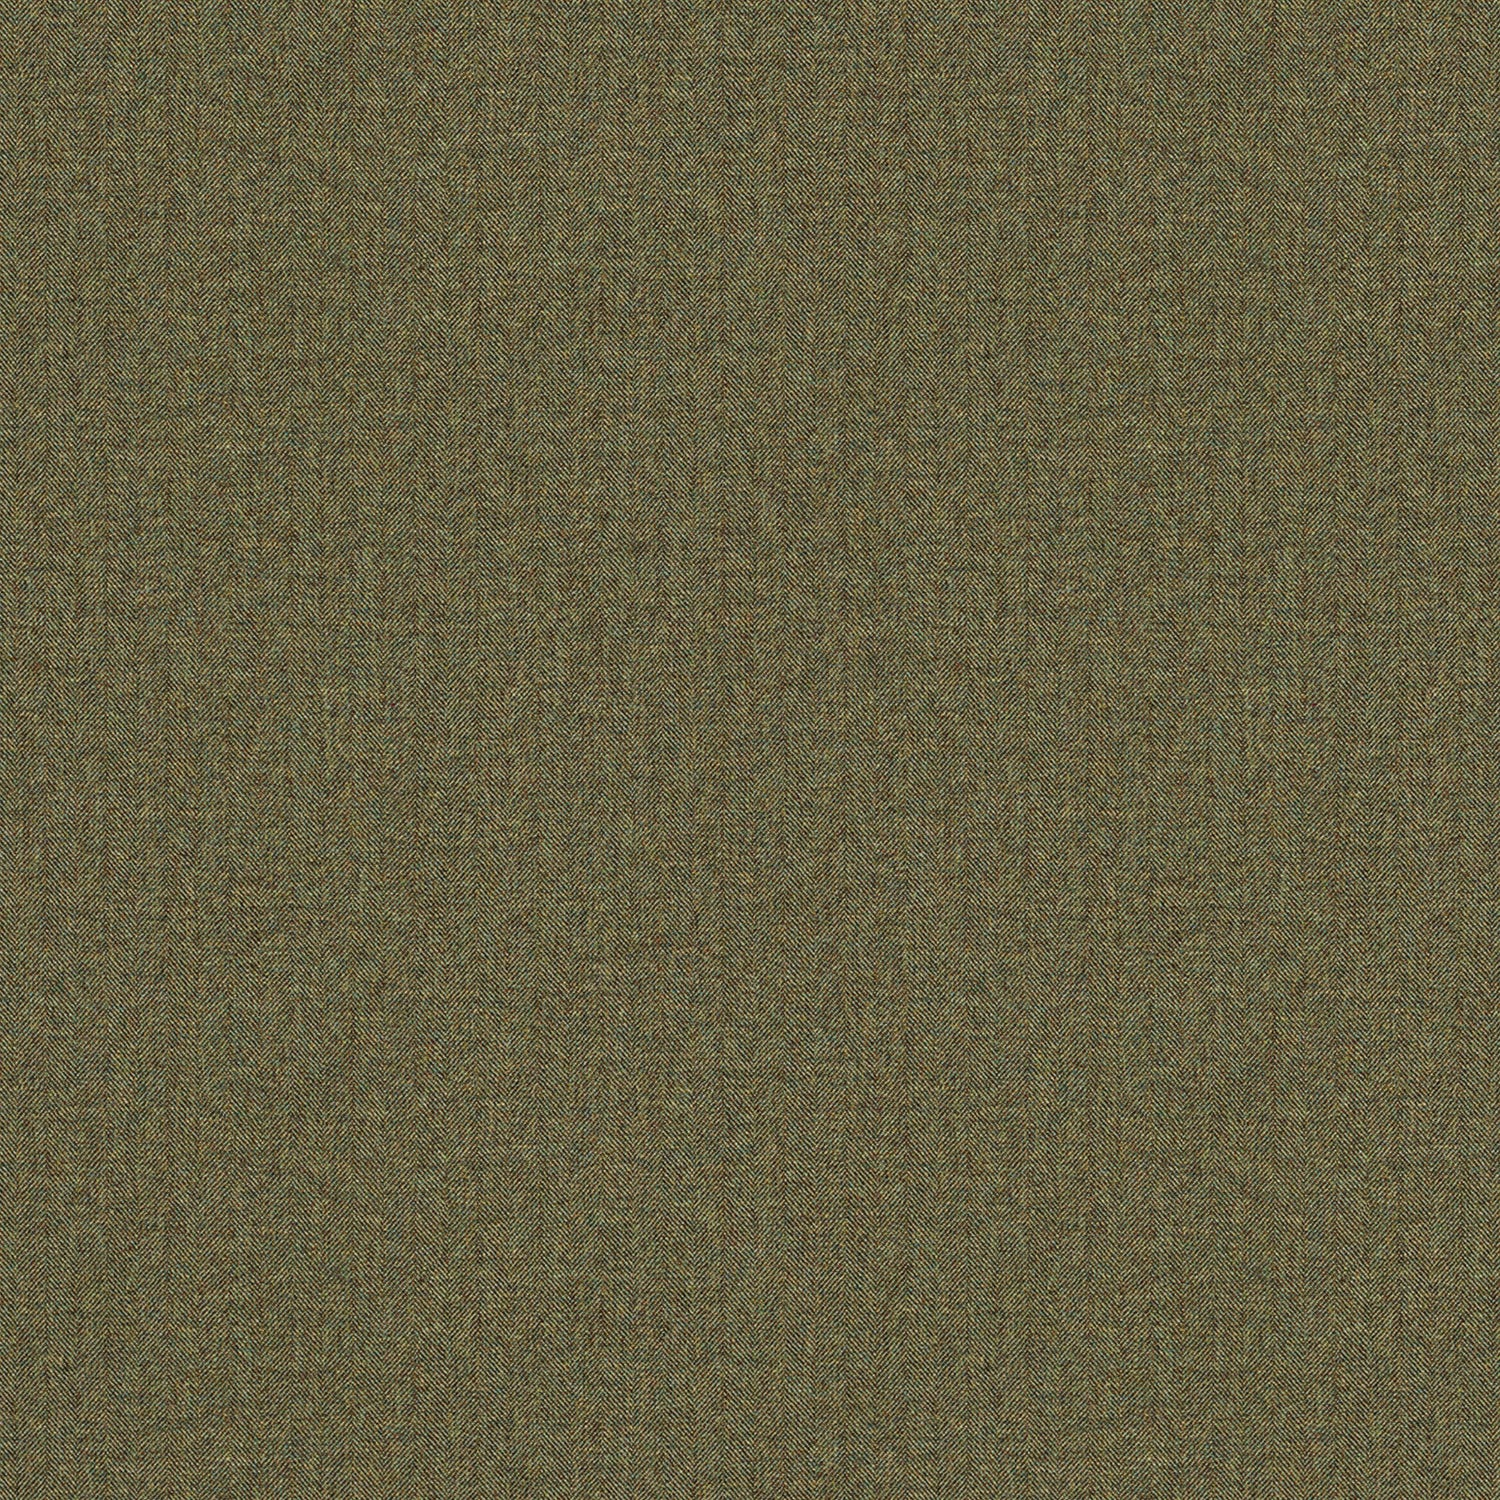 Fabric swatch of a khaki Scottish wool herringbone fabric for curtains and upholstery